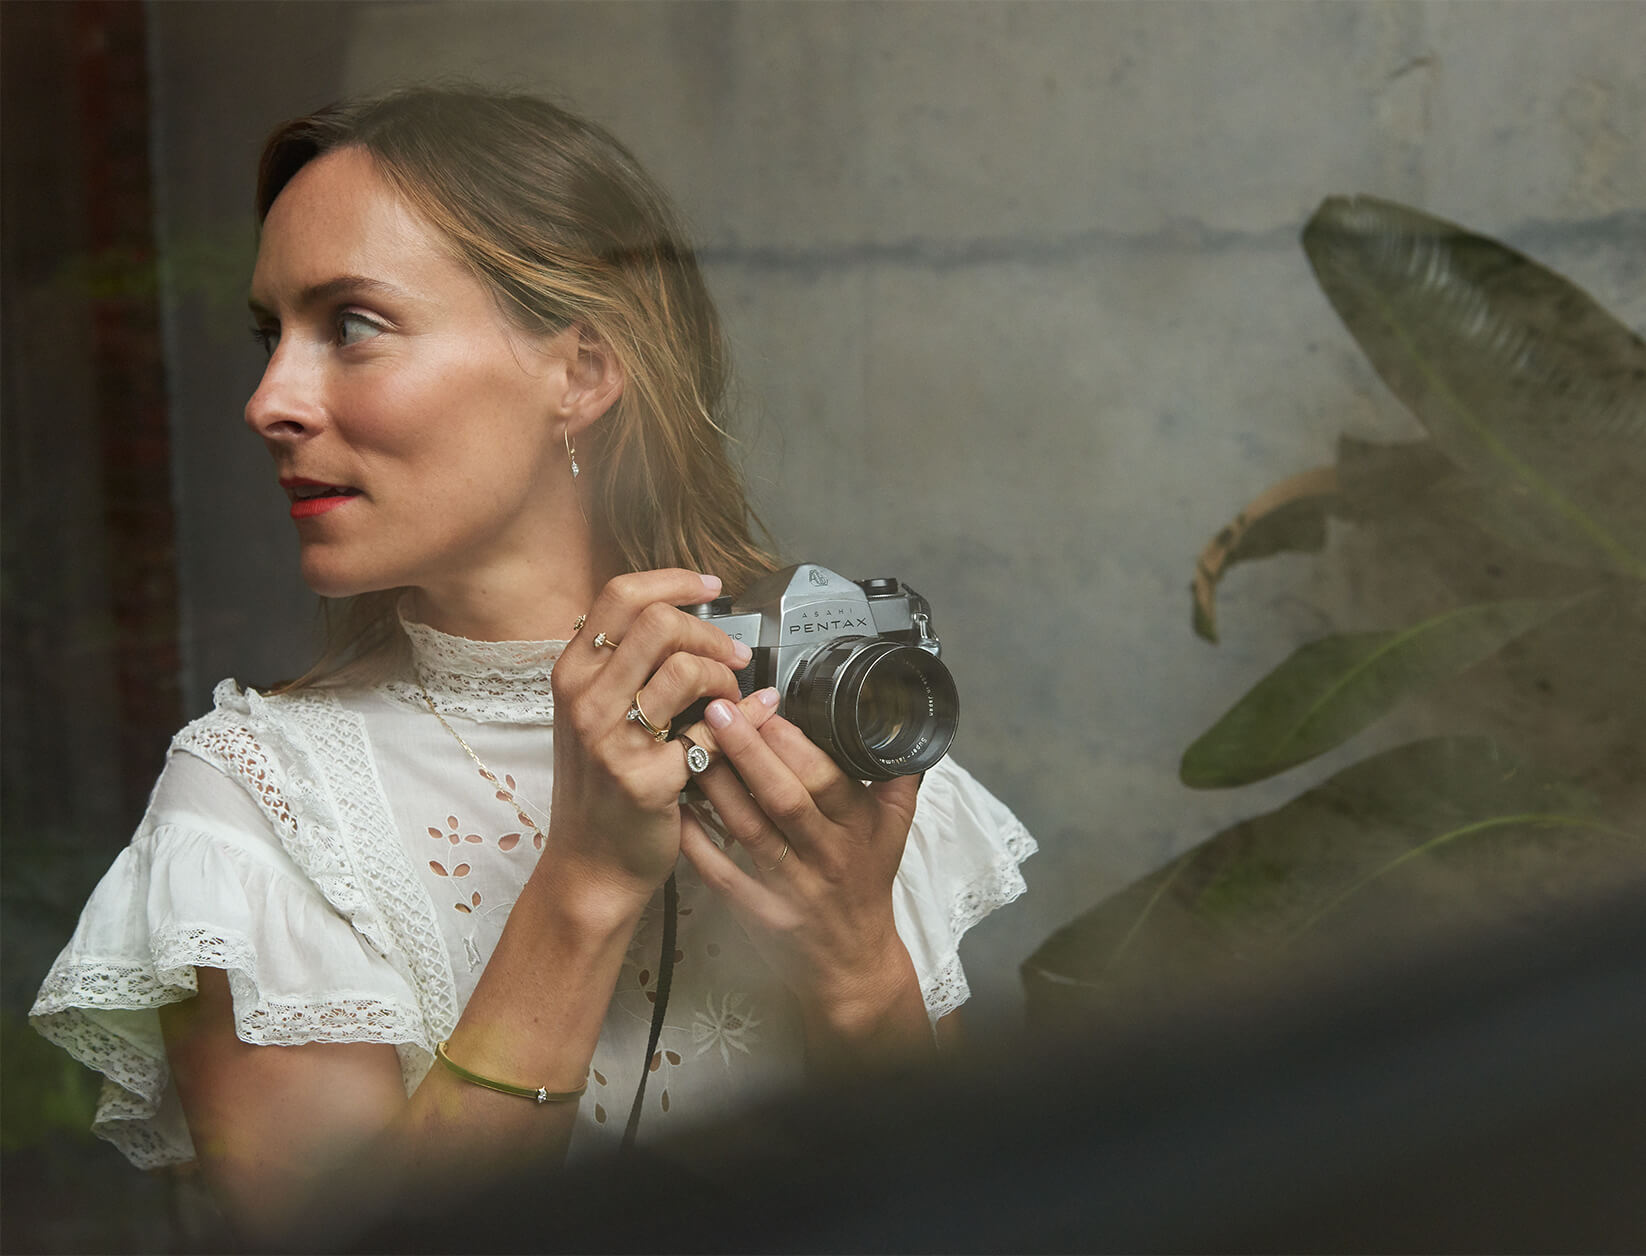 Picture of Lucy Laucht Taking a Picture